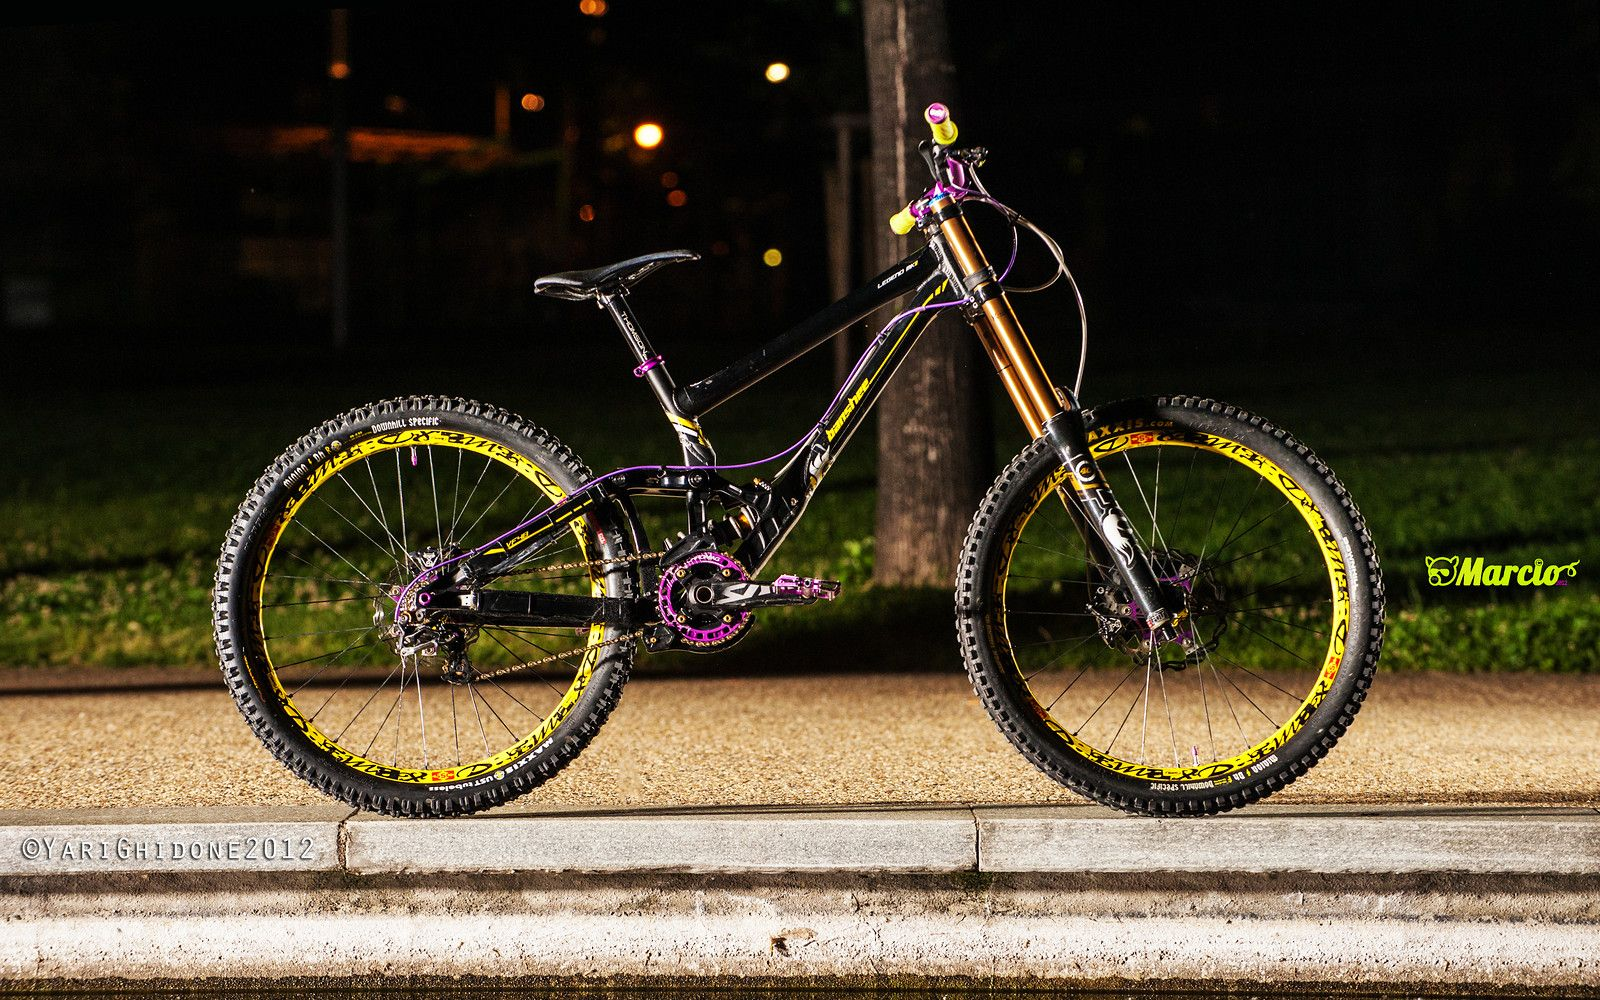 Banshee Legend MkII 2012 Black/Yellow/Purple - marci0's Bike Check - Vital MTB